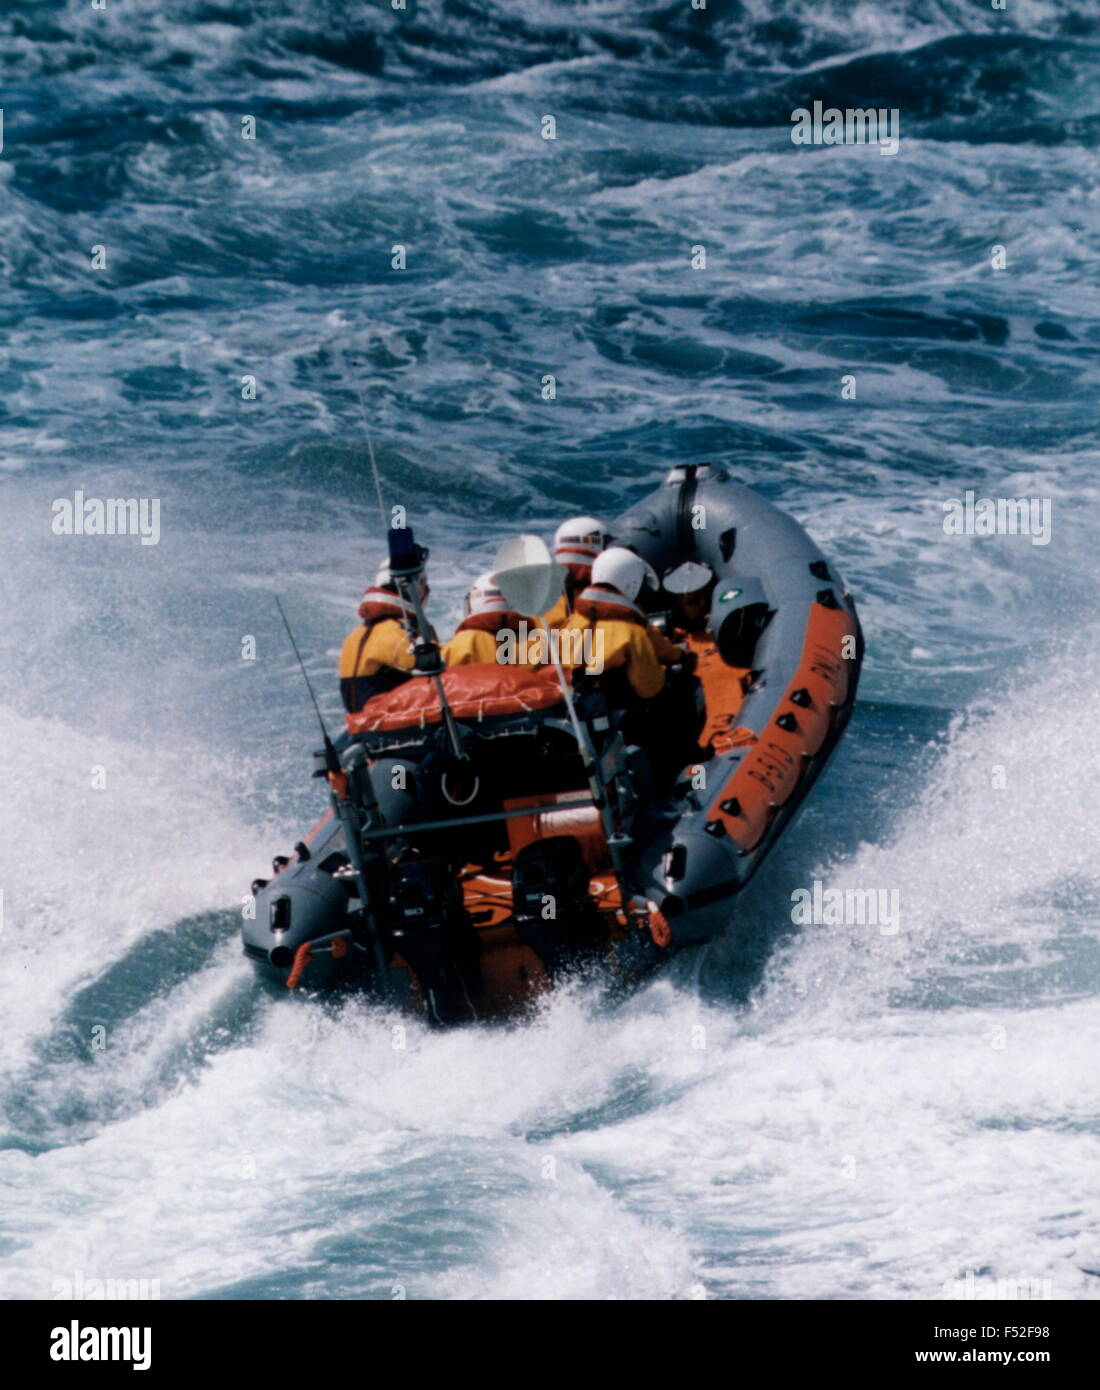 AJAXNETPHOTO. SOLENT, ENGLAND. - RNLI RIB - A ROYAL NATIONAL LIFEBOAT INSTITUTION RIGID INFLATABLE RESCUE BOAT AT - Stock Image